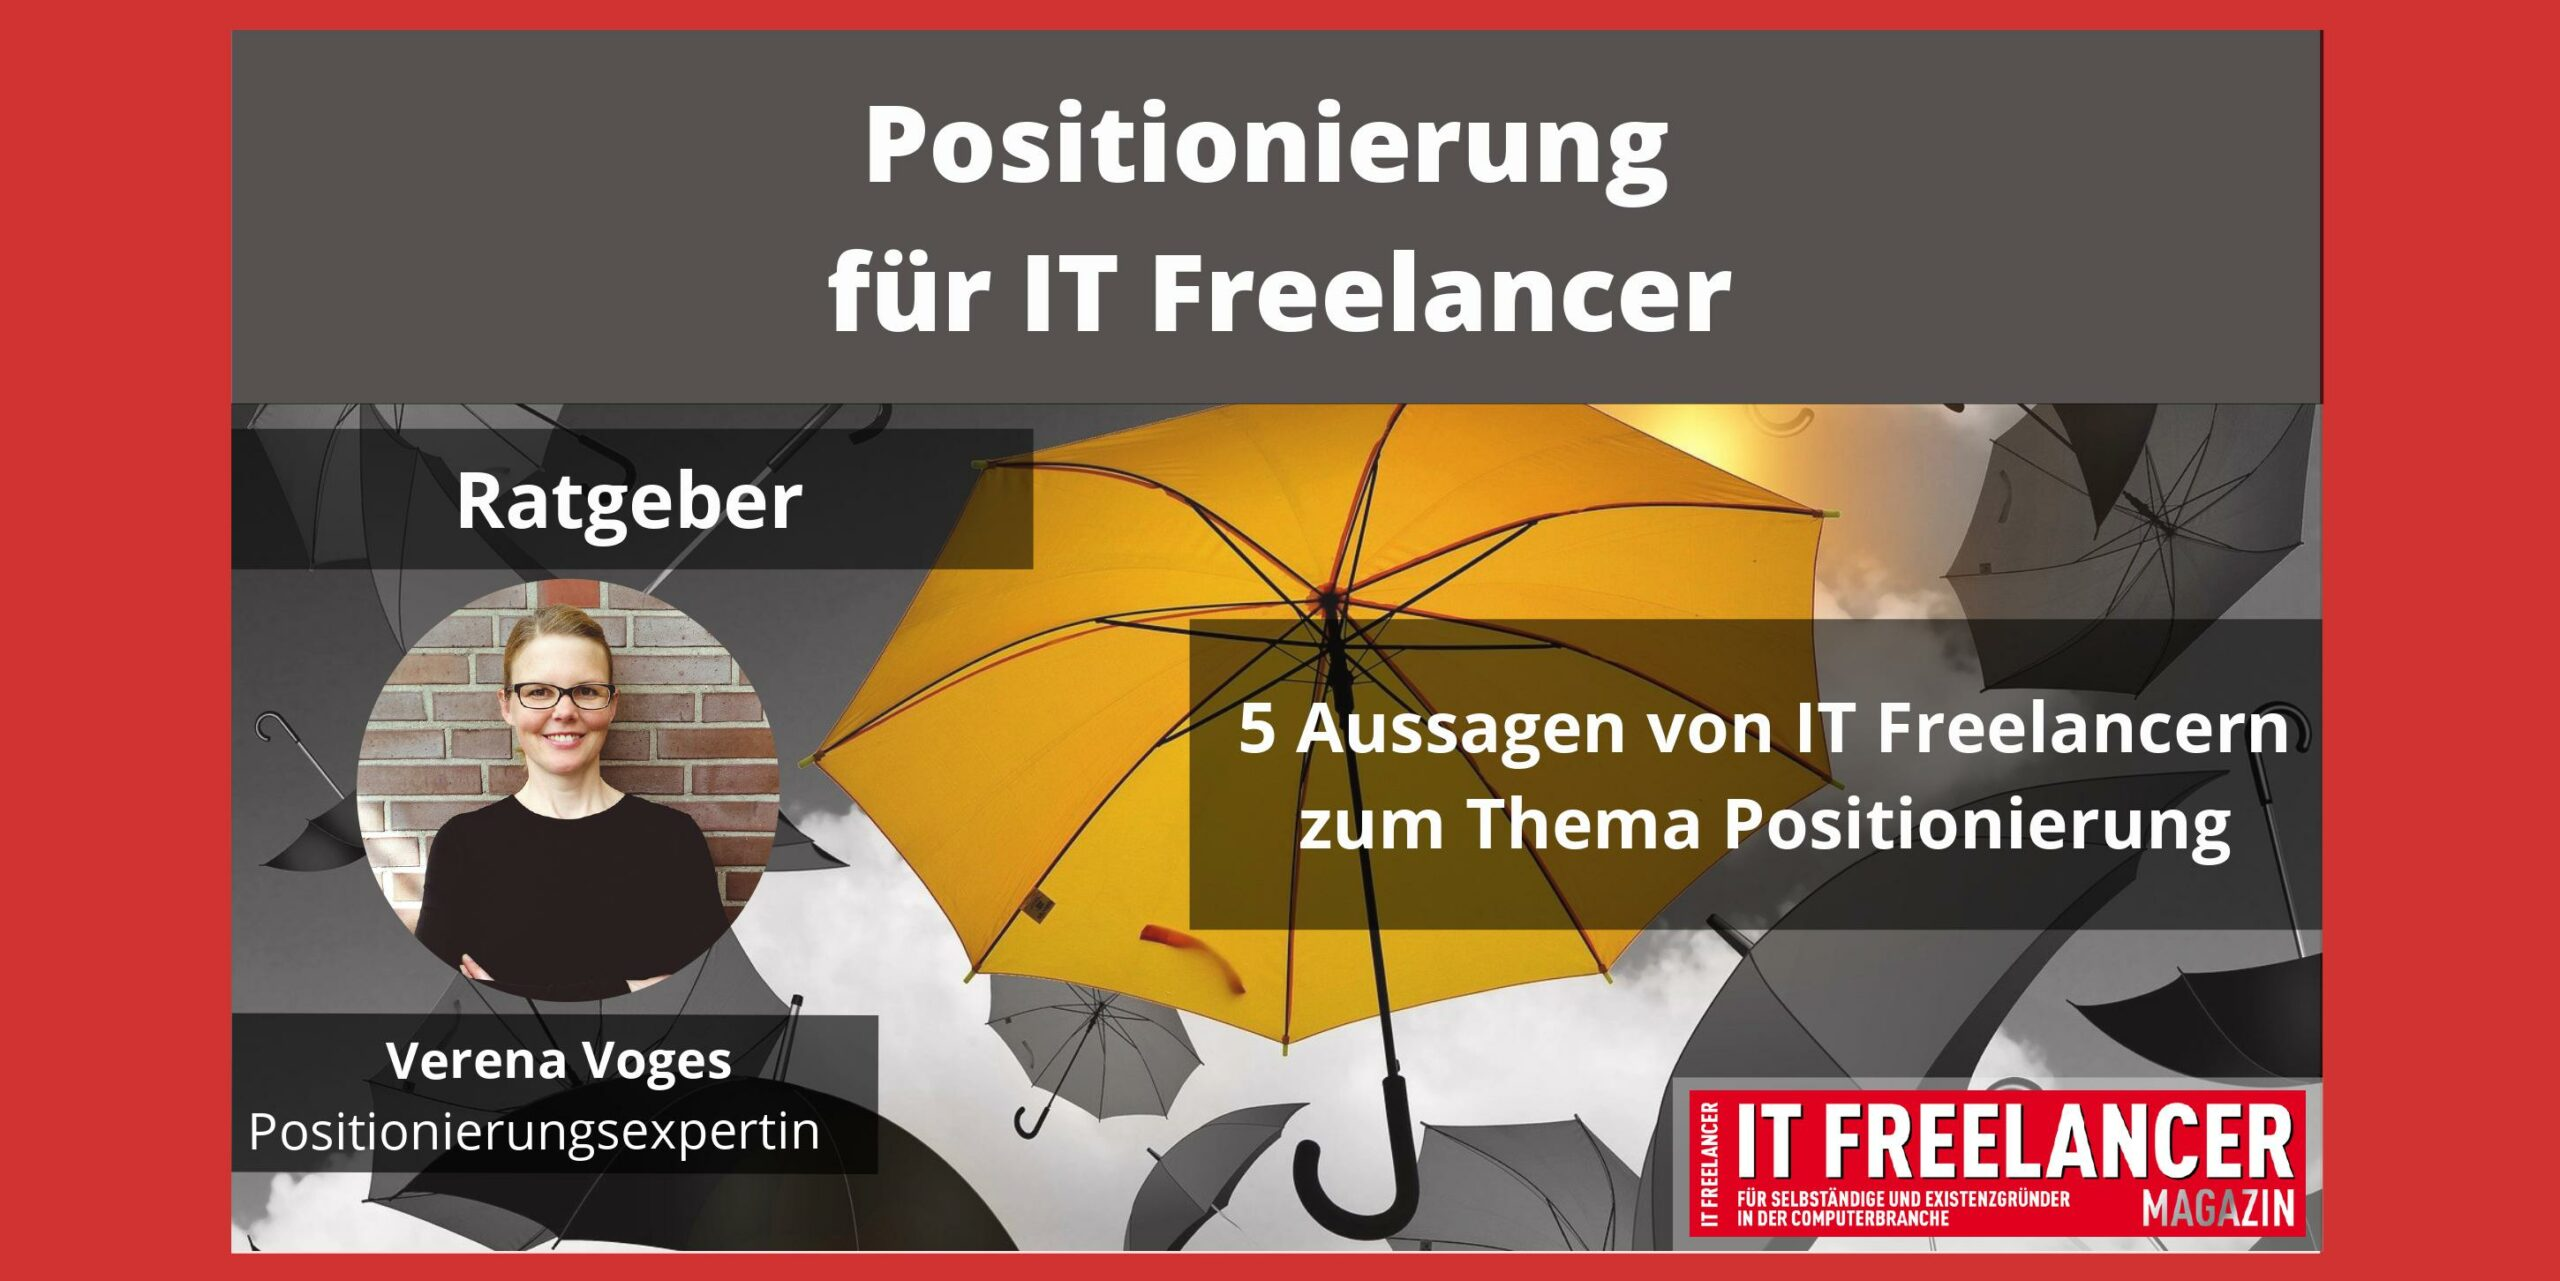 Positionierung für IT Freelancer